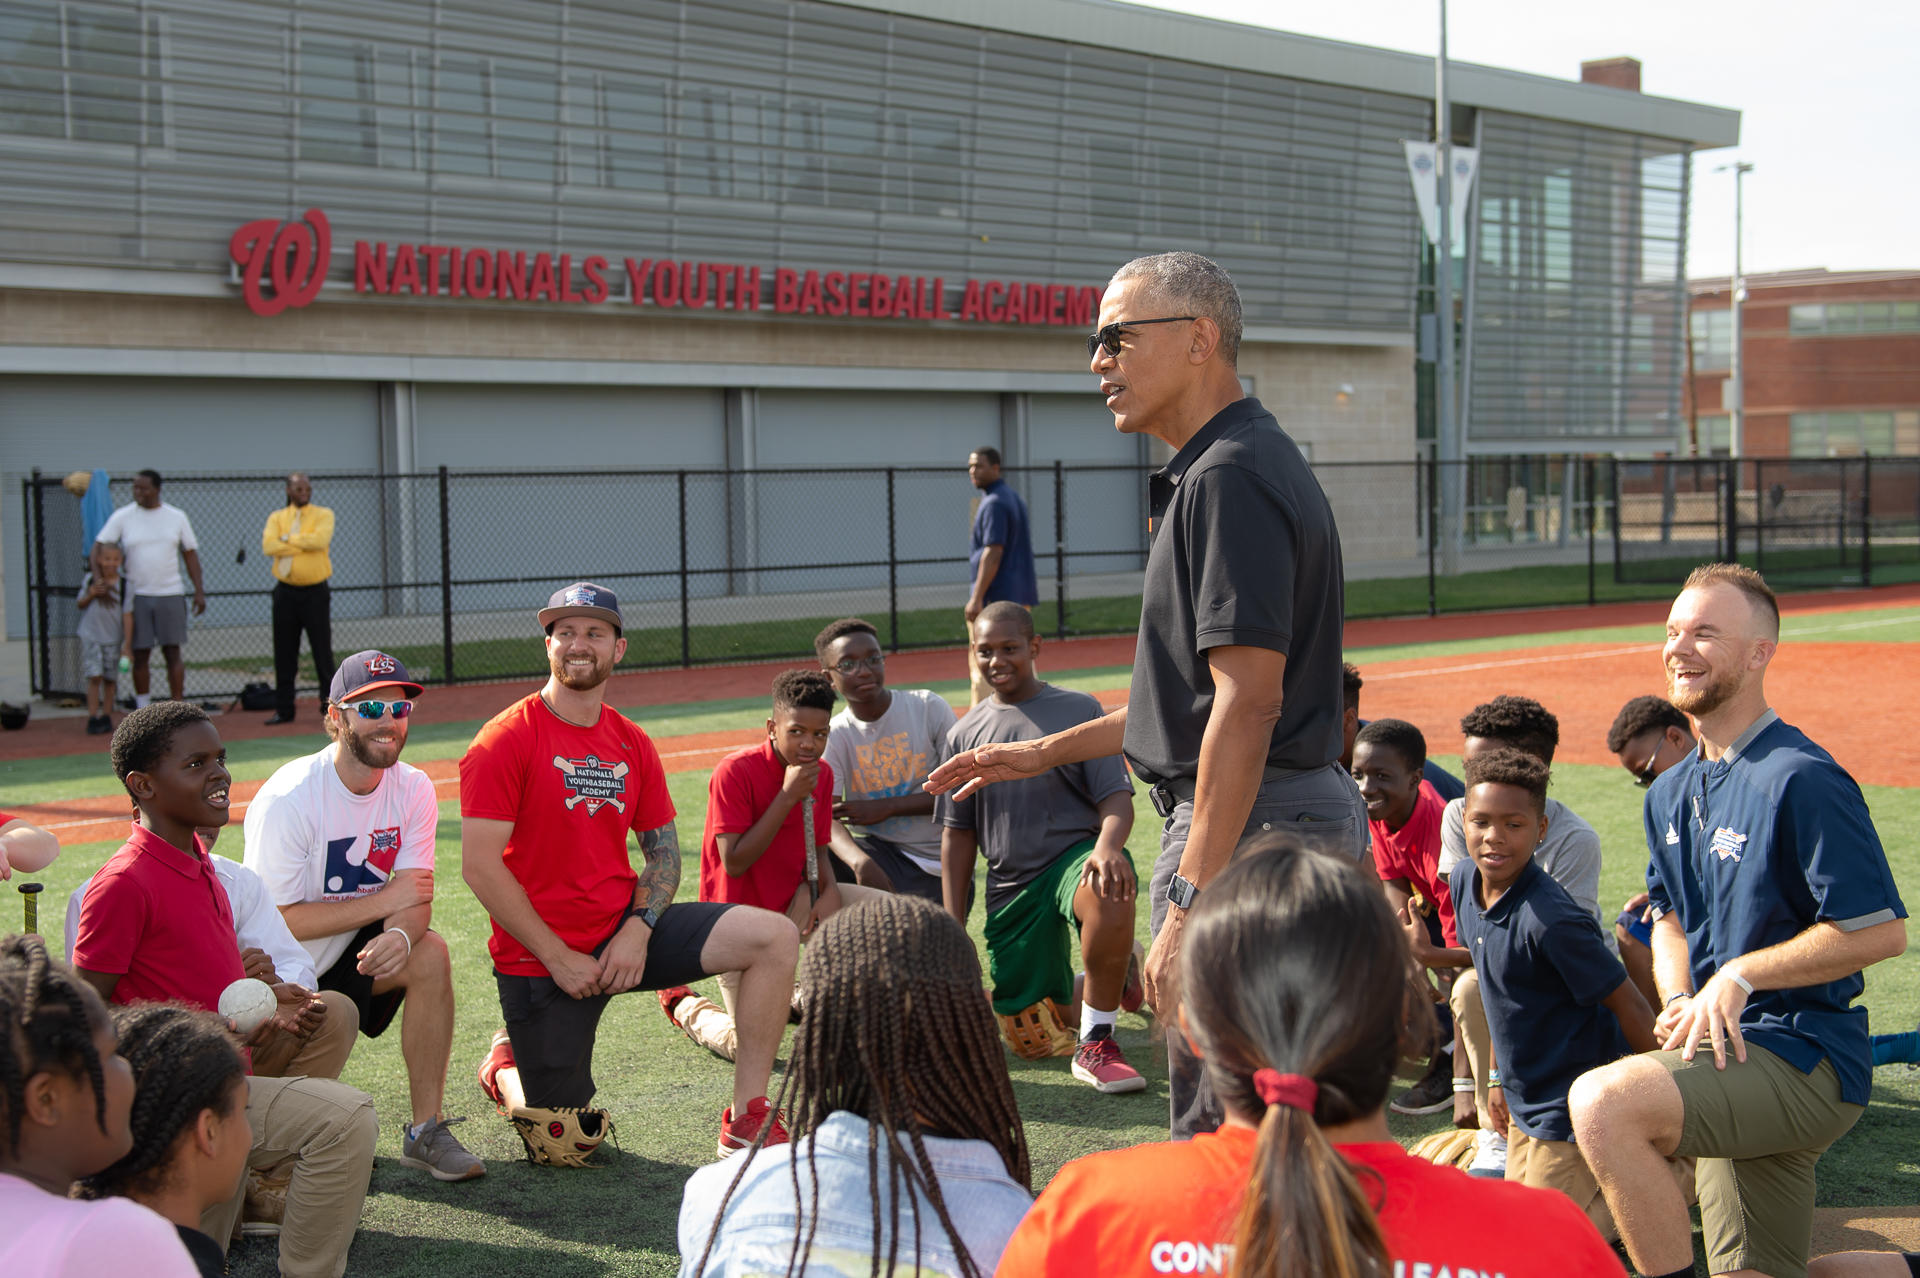 Former U.S. President Barack Obama speaks to students and coaches during his visit to the Washington Nationals Youth Baseball Academy in D.C. (Image: Paul Kim/ Washington Nationals Youth Baseball Academy)